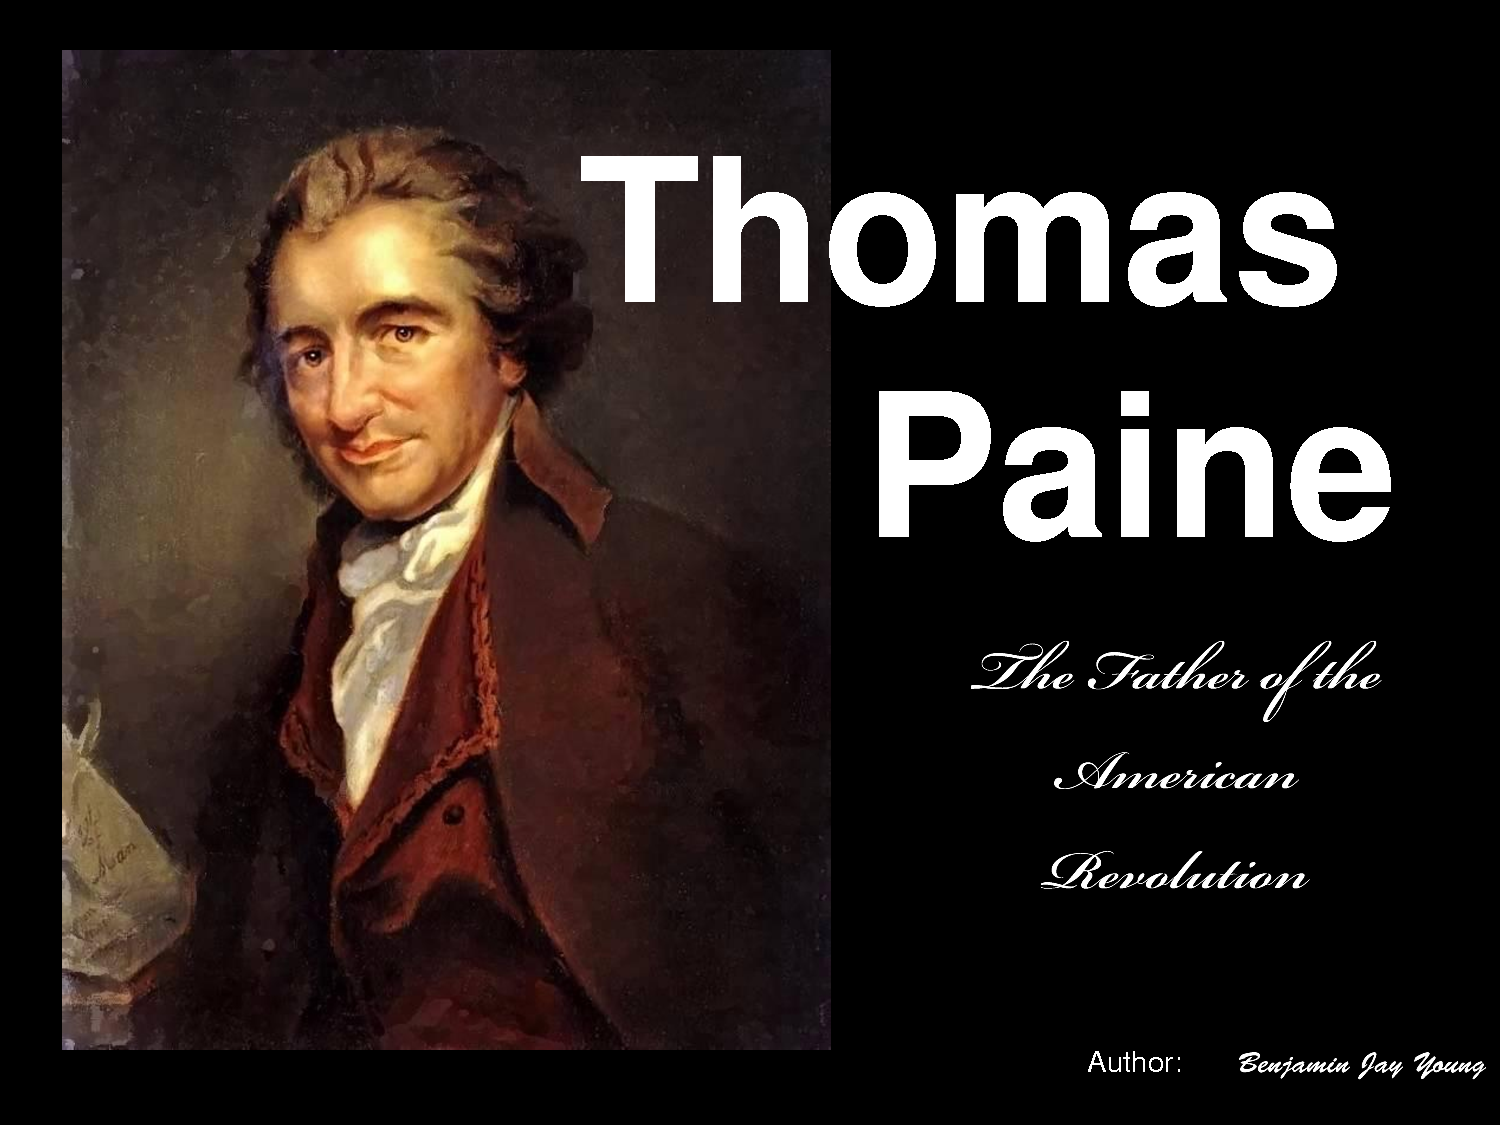 thomas paine the crisis Thomas paine's the crisis number one 1776 - richard destefano after the colonists in america decided that they were going to attempt a move towards freedom from british rule, they found themselves faced with several problems.